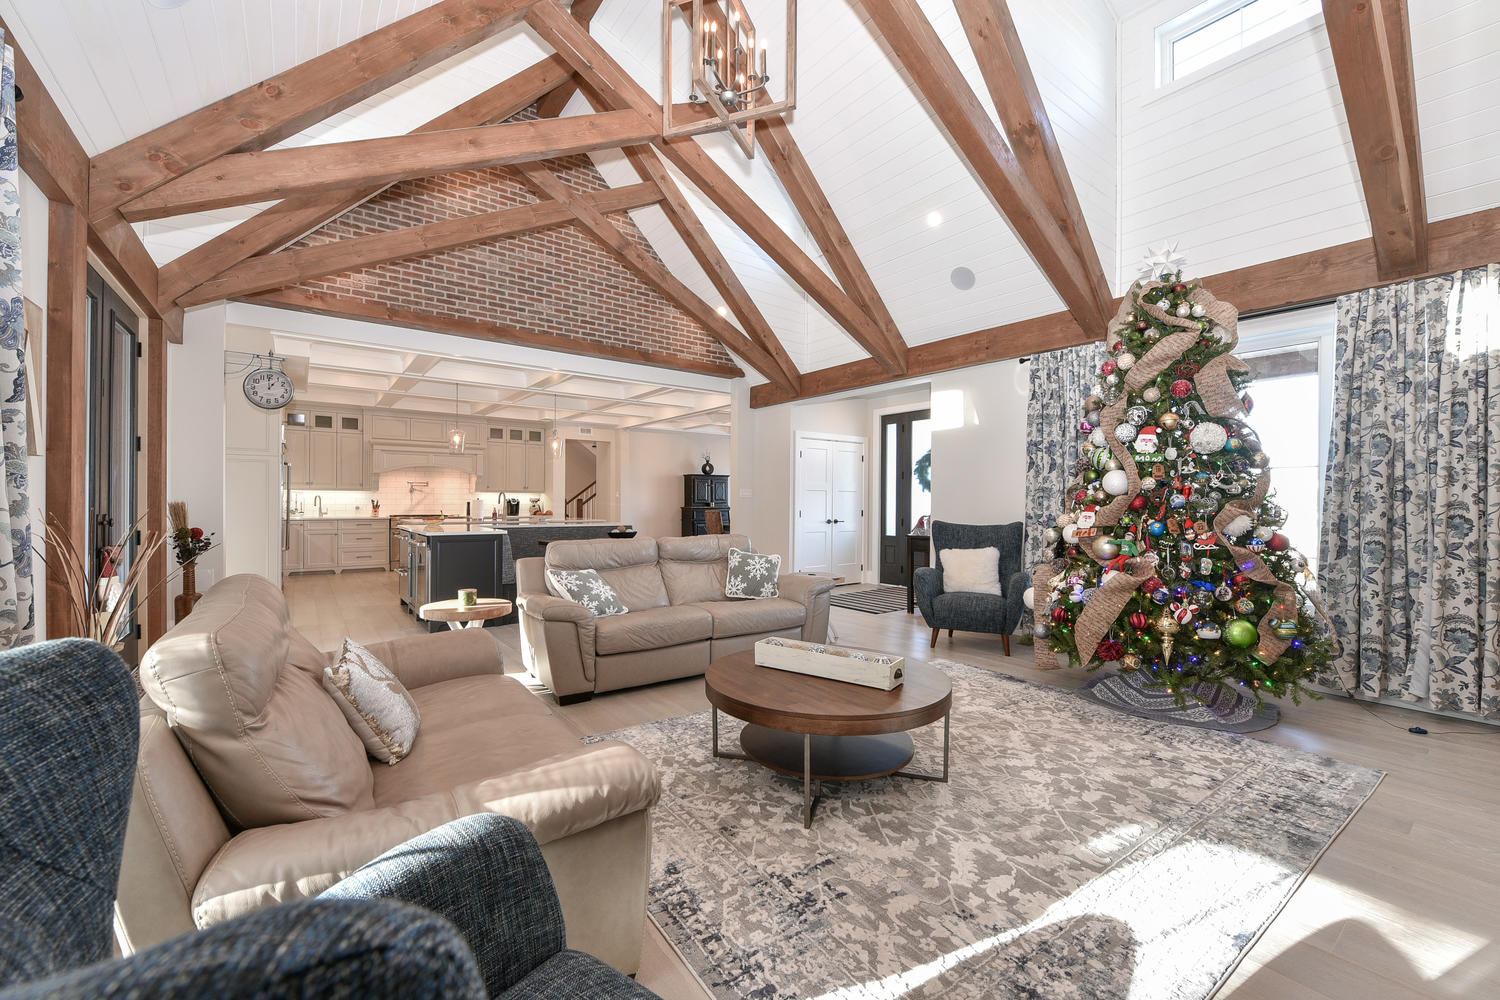 Living Room - Eclectic Country Project In Renfrew